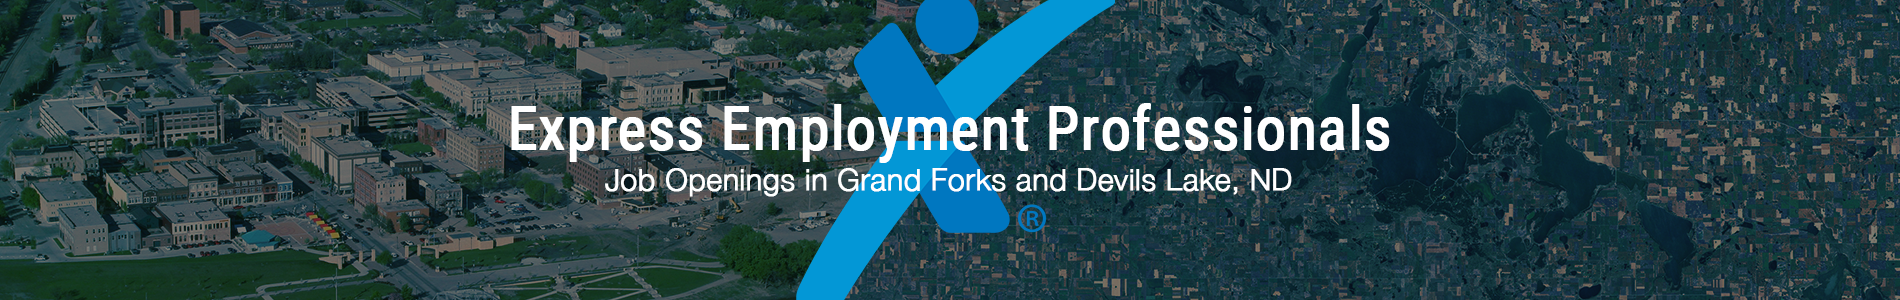 Job Openings in Grand Forks, ND